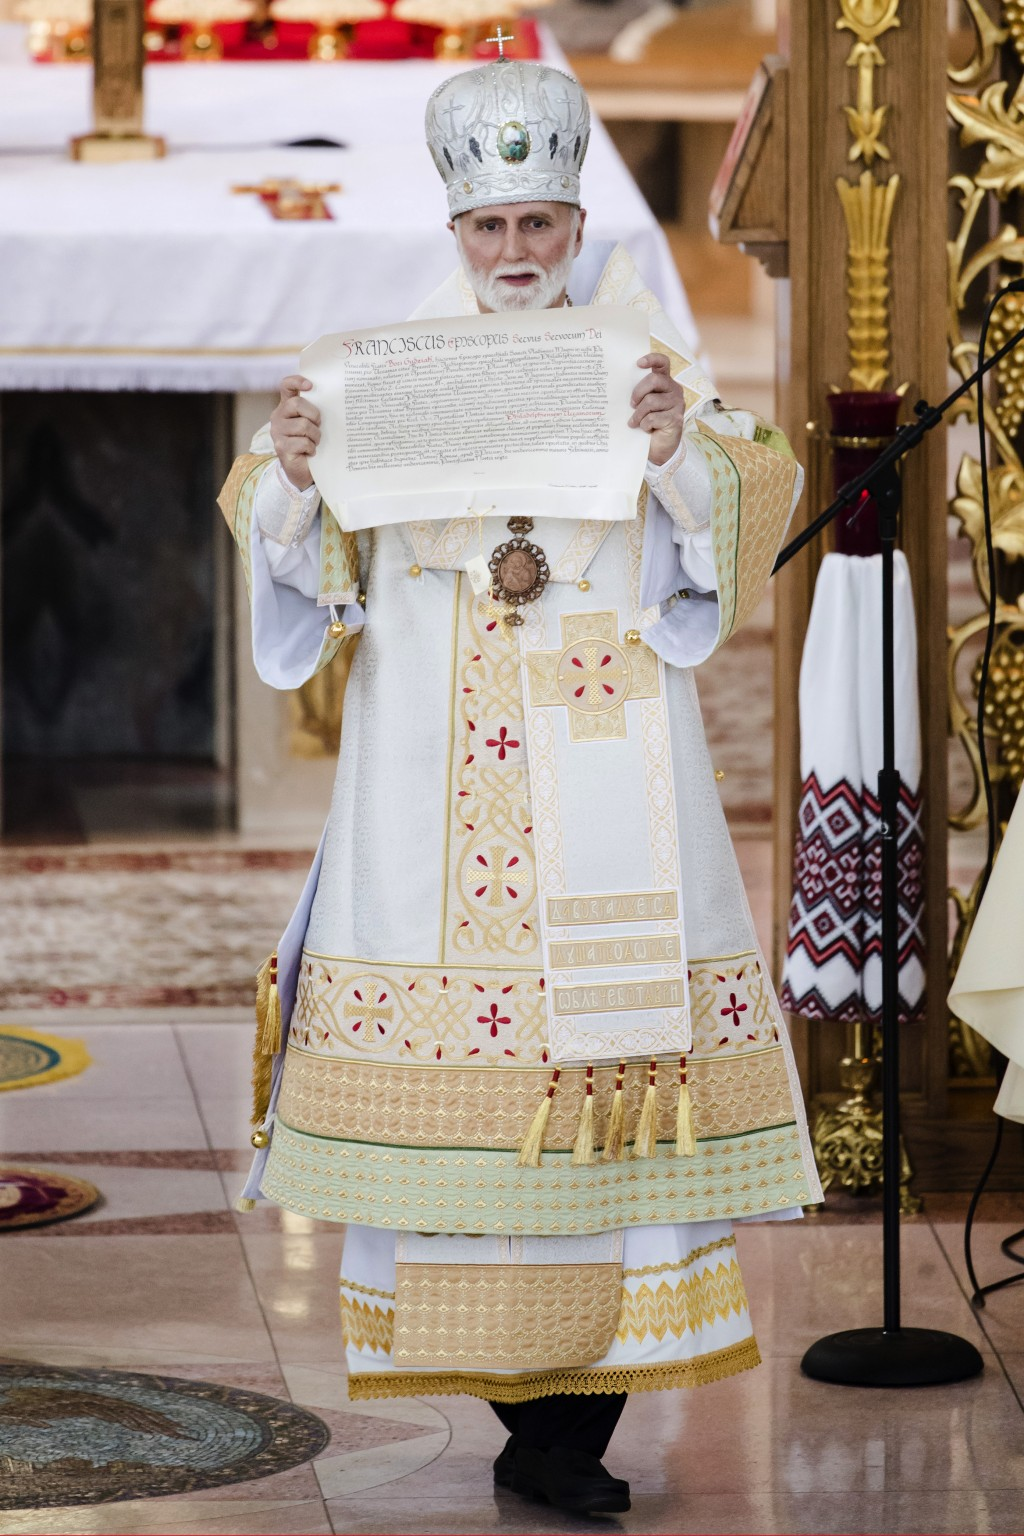 Incoming Metropolitan Archbishop of the Ukrainian Catholic Diocese of Philadelphia Borys Gudziak, displays a document from Pope Francis during a cerem...